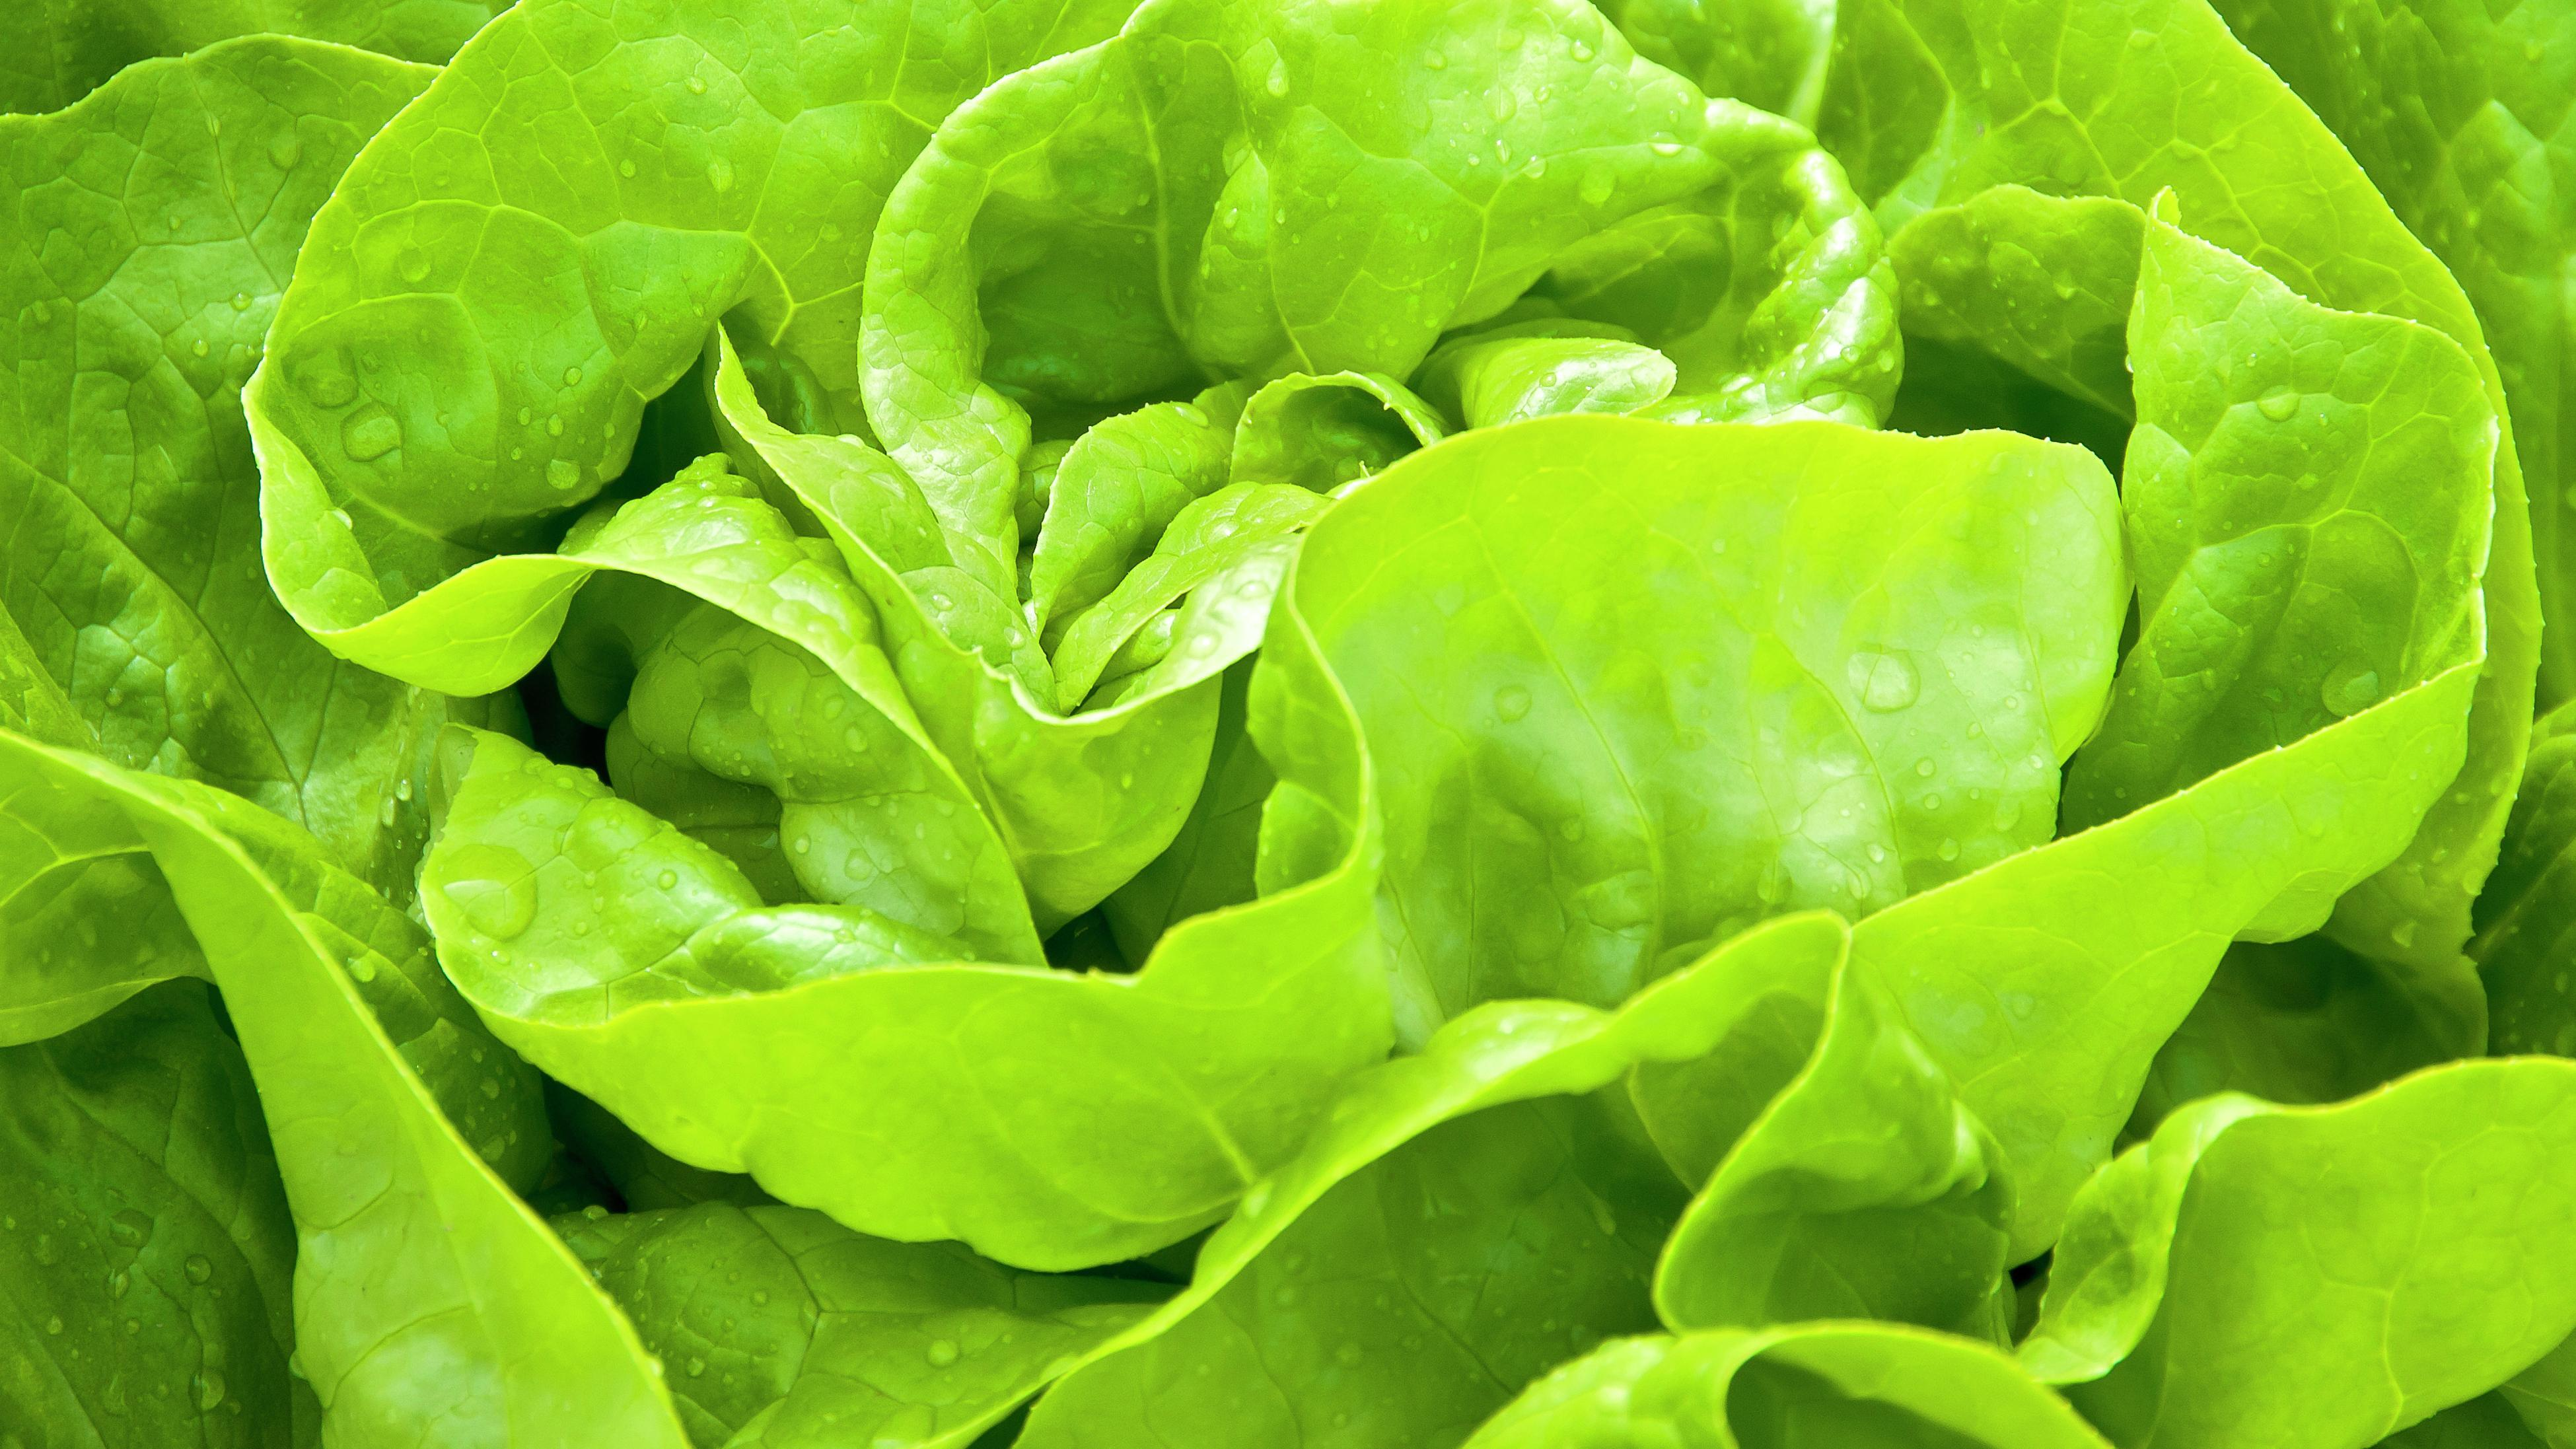 close up of a lettuce head